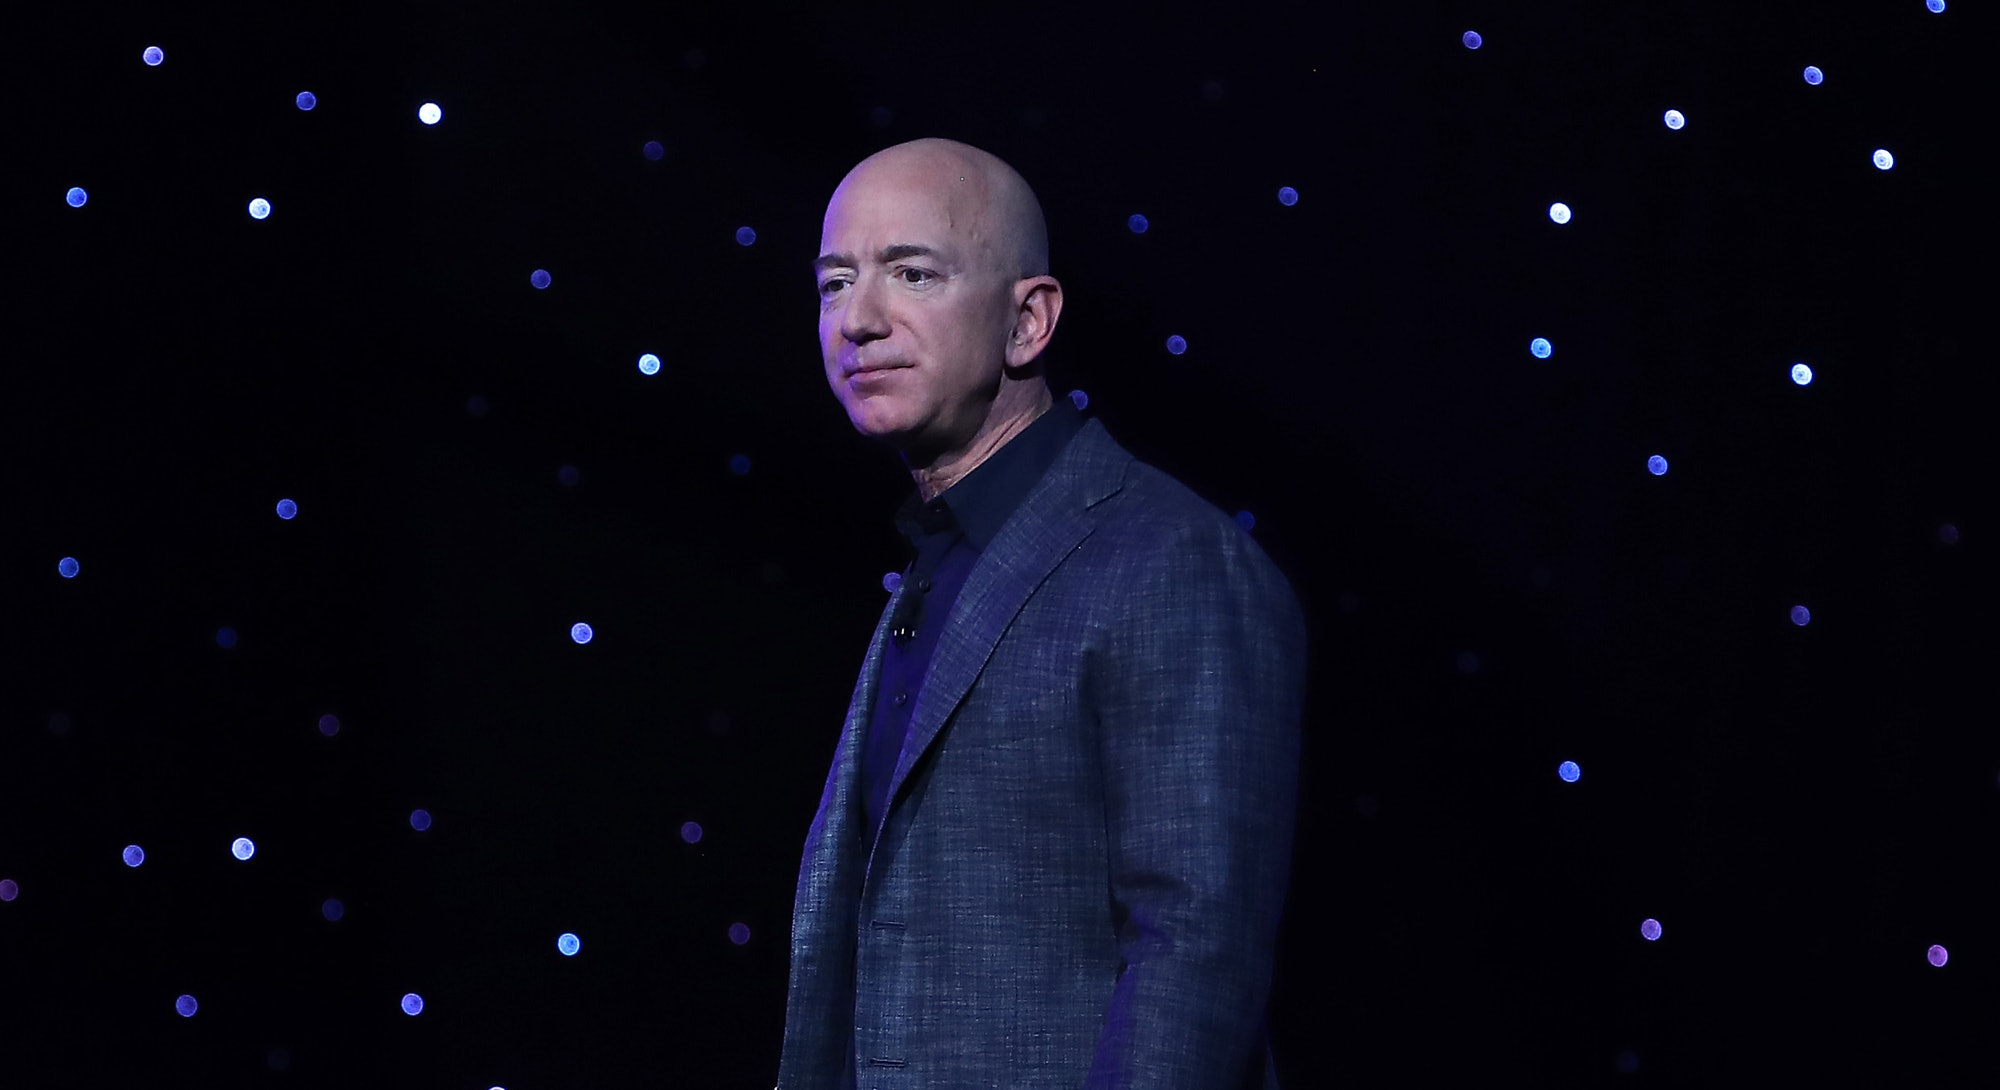 WASHINGTON, DC - MAY 09: Jeff Bezos, owner of Blue Origin, speaks about outer space before unveiling...